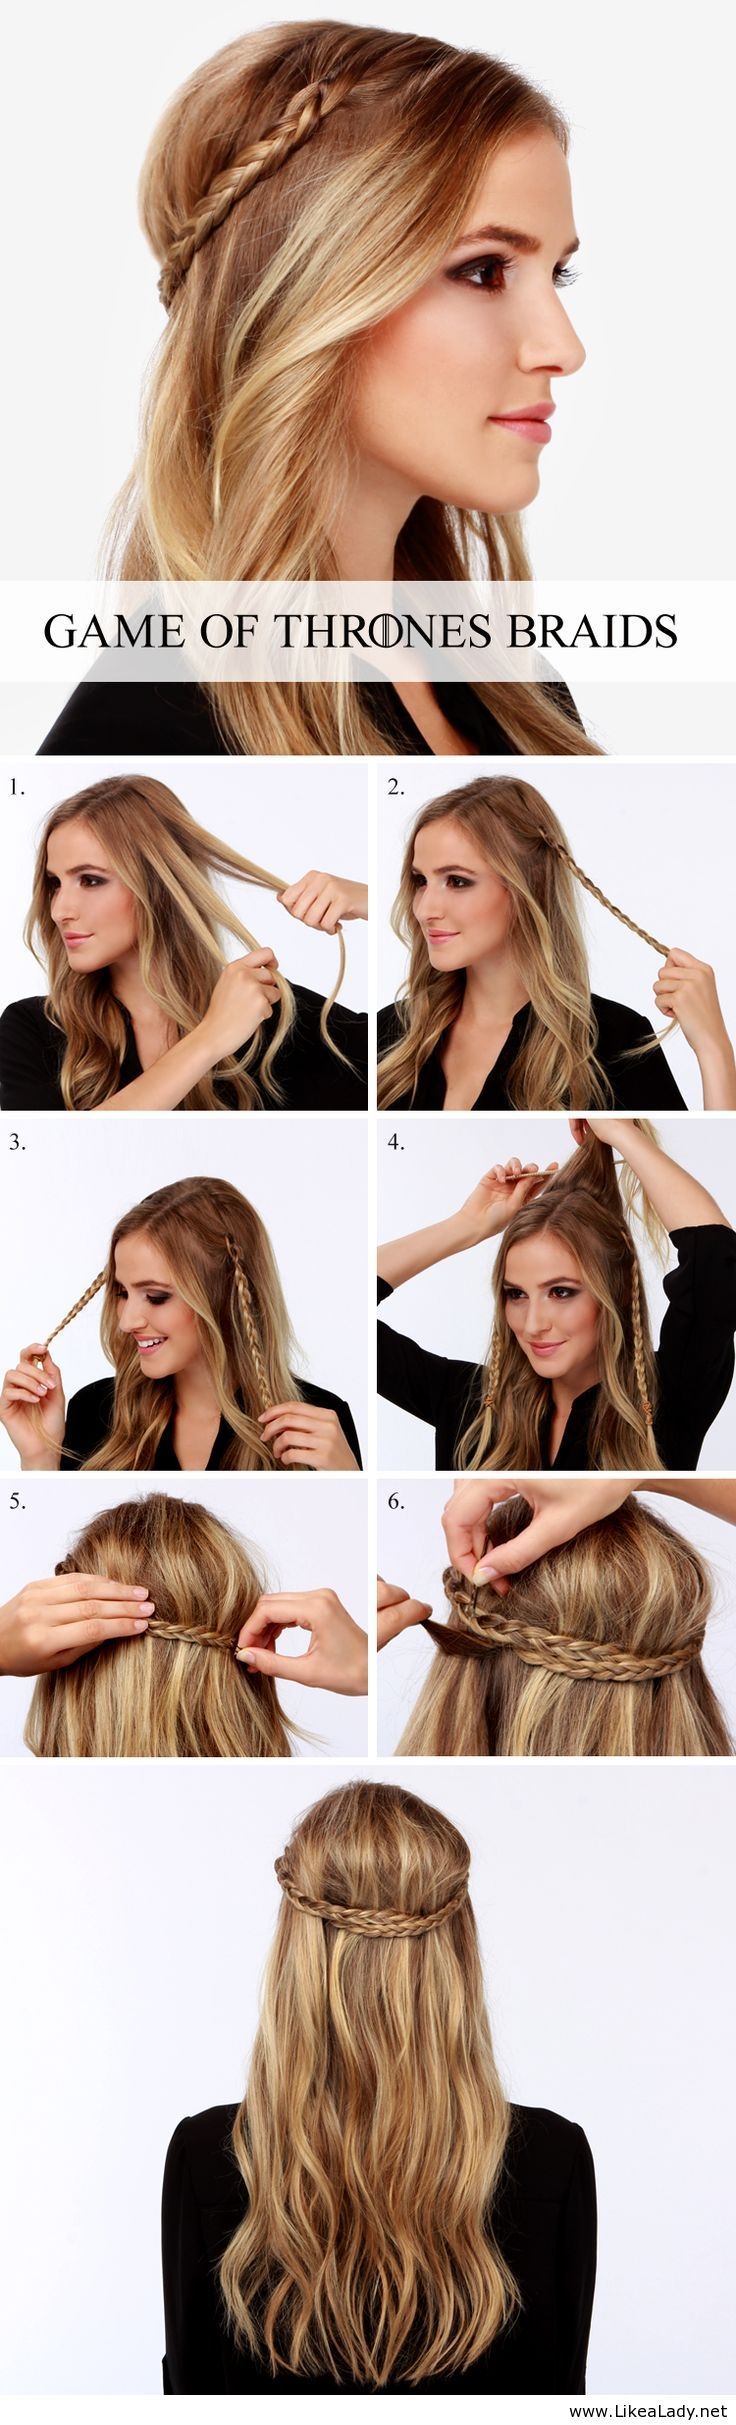 Game of thrones braid tutorial make impressions with your hair